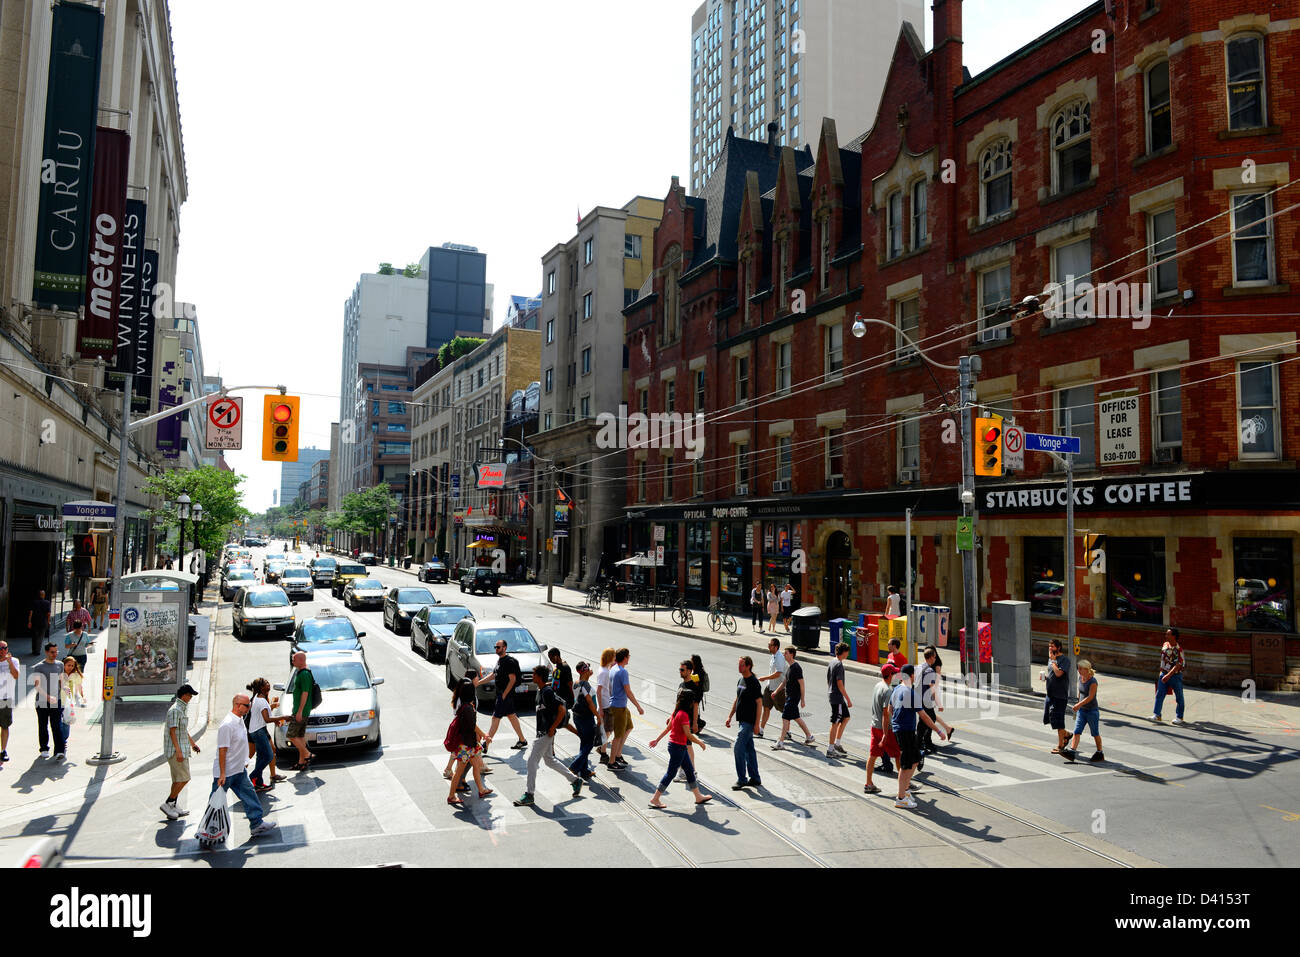 Toronto Eaton Centre. Start your day off at one of the city's most iconic shopping hubs – Toronto Eaton distrib-wjmx2fn9.gaiently located downtown on Yonge Street between Queen and Dundas, this stylish mall is a Toronto landmark.